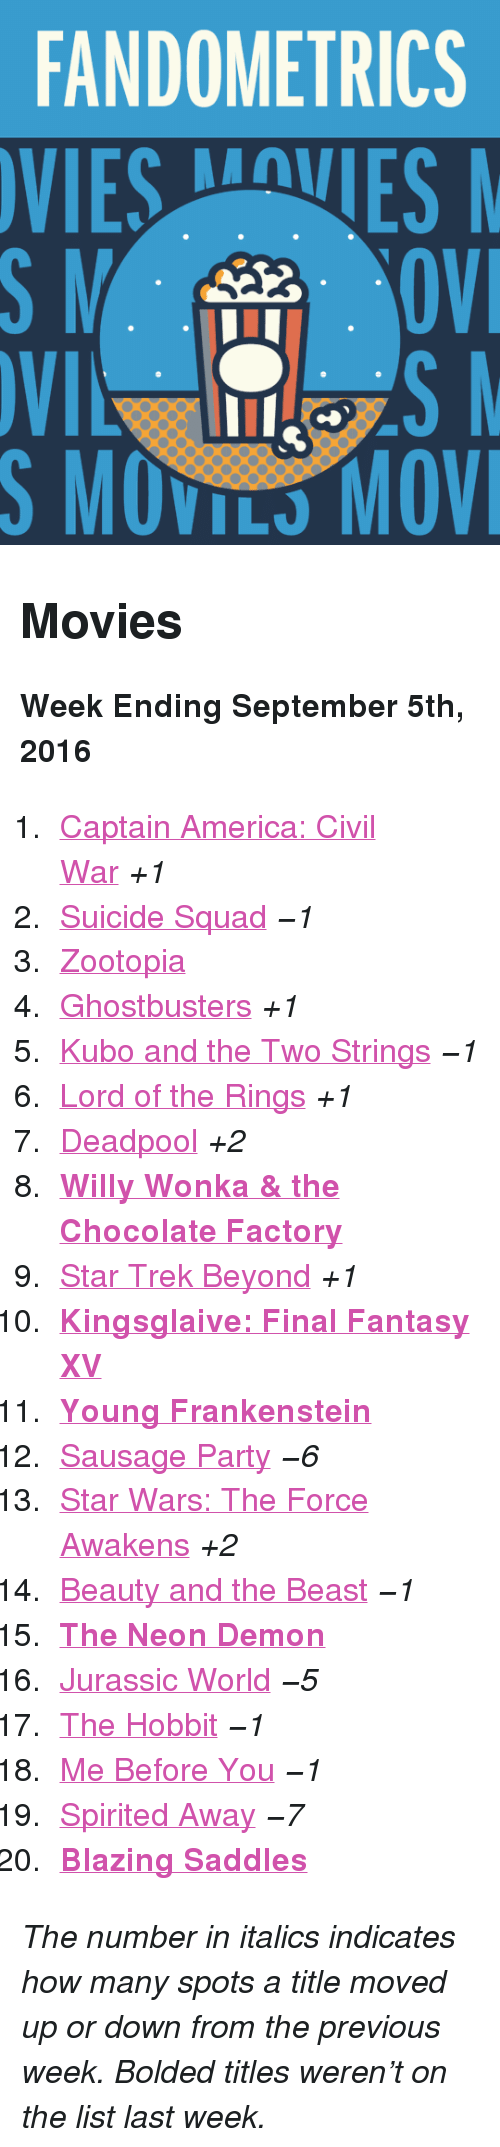 "saddles: FANDOMETRICS  VIESVES  S MOVILS MOV <h2>Movies</h2><p><b>Week Ending September 5th, 2016</b></p><ol><li><a href=""http://www.tumblr.com/search/captain%20america%20civil%20war"">Captain America: Civil War</a> <i>+1</i></li>  <li><a href=""http://www.tumblr.com/search/suicide%20squad"">Suicide Squad</a> <i>−1</i></li>  <li><a href=""http://www.tumblr.com/search/zootopia"">Zootopia</a></li>  <li><a href=""http://www.tumblr.com/search/ghostbusters"">Ghostbusters</a> <i>+1</i></li>  <li><a href=""http://www.tumblr.com/search/kubo%20and%20the%20two%20strings"">Kubo and the Two Strings</a> <i>−1</i></li>  <li><a href=""http://www.tumblr.com/search/lotr"">Lord of the Rings</a> <i>+1</i></li>  <li><a href=""http://www.tumblr.com/search/deadpool"">Deadpool</a> <i>+2</i></li>  <li><a href=""http://www.tumblr.com/search/willy%20wonka""><b>Willy Wonka &amp; the Chocolate Factory</b></a></li>  <li><a href=""http://www.tumblr.com/search/star%20trek%20beyond"">Star Trek Beyond</a> <i>+1</i></li>  <li><a href=""http://www.tumblr.com/search/kingsglaive""><b>Kingsglaive: Final Fantasy XV</b></a></li>  <li><a href=""http://www.tumblr.com/search/young%20frankenstein""><b>Young Frankenstein</b></a></li>  <li><a href=""http://www.tumblr.com/search/sausage%20party"">Sausage Party</a> <i>−6</i></li>  <li><a href=""http://www.tumblr.com/search/the%20force%20awakens"">Star Wars: The Force Awakens</a> <i>+2</i></li>  <li><a href=""http://www.tumblr.com/search/beauty%20and%20the%20beast"">Beauty and the Beast</a> <i>−1</i></li>  <li><a href=""http://www.tumblr.com/search/the%20neon%20demon""><b>The Neon Demon</b></a></li>  <li><a href=""http://www.tumblr.com/search/jurassic%20world"">Jurassic World</a> <i>−5</i></li>  <li><a href=""http://www.tumblr.com/search/the%20hobbit"">The Hobbit</a> <i>−1</i></li>  <li><a href=""http://www.tumblr.com/search/me%20before%20you"">Me Before You</a> <i>−1</i></li>  <li><a href=""http://www.tumblr.com/search/spirited%20away"">Spirited Away</a> <i>−7</i></li>  <li><a href=""http://www.tumblr.com/search/blazing%20saddles""><b>Blazing Saddles</b></a></li></ol><p><i>The number in italics indicates how many spots a title moved up or down from the previous week. Bolded titles weren't on the list last week.</i></p>"